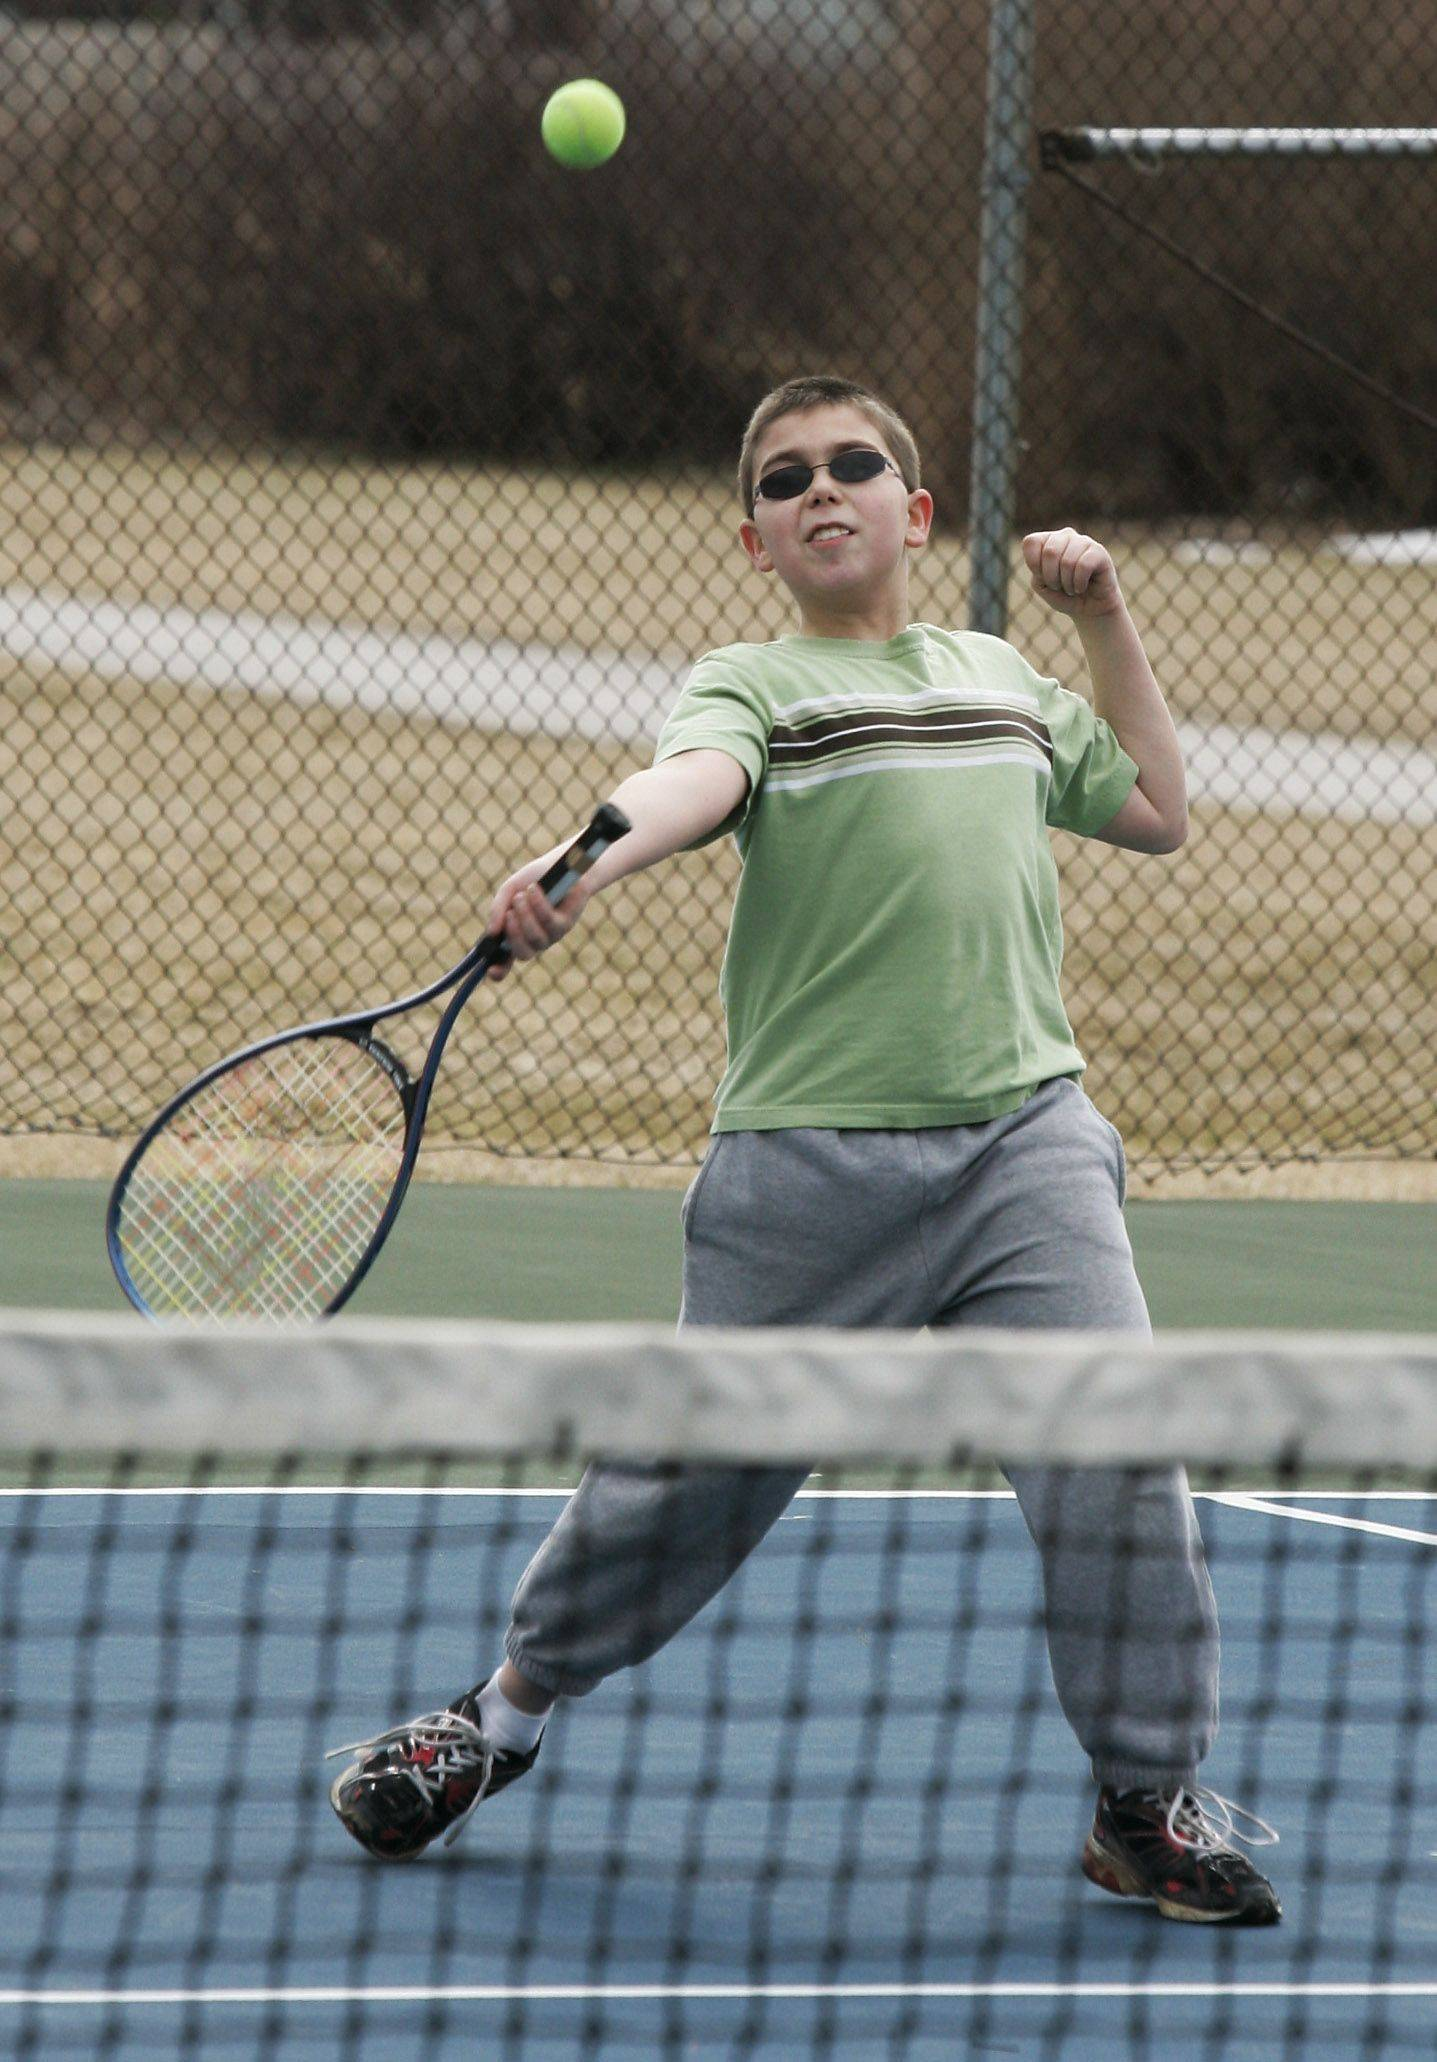 Sammy Thornburg, 11, of Mundelein plays tennis with his father, Chris, as they enjoy the warmer weather Sunday at Maurice Noll Park in Mundelein.